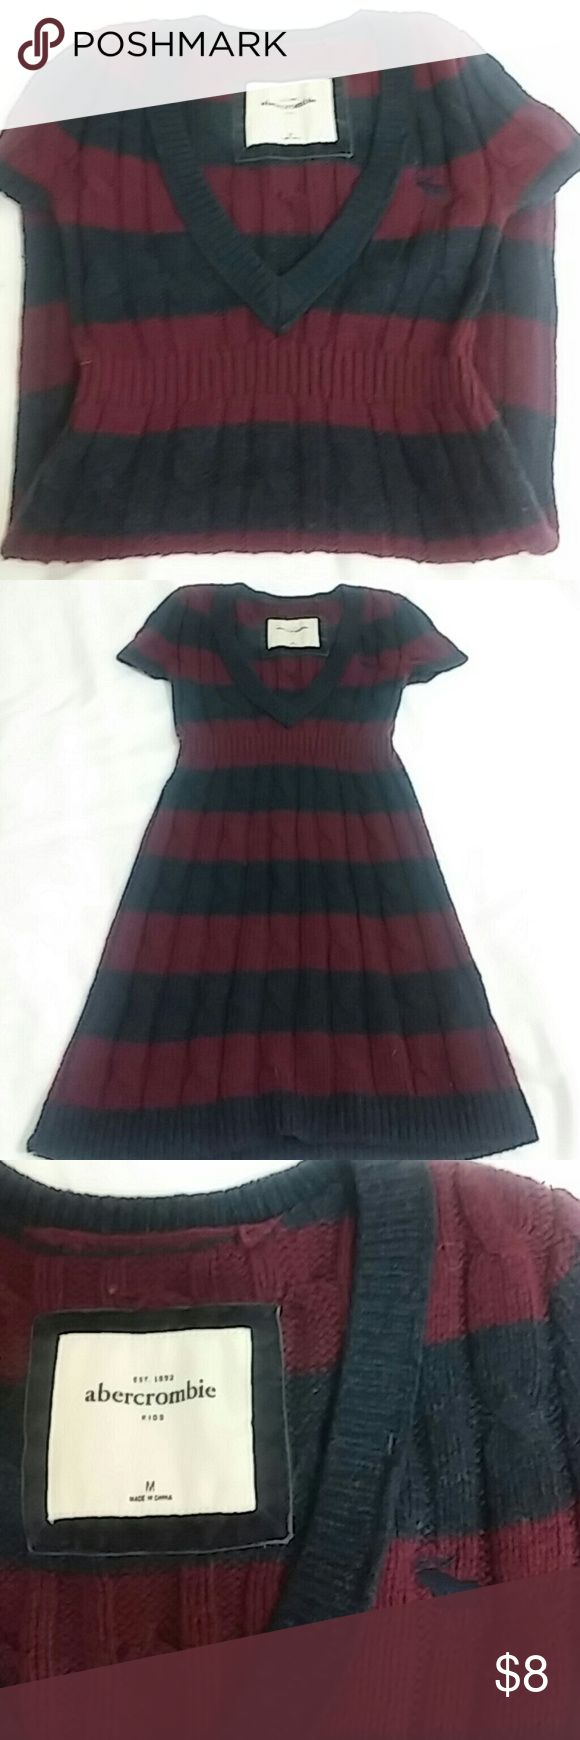 Abercrombie girls dress M good used condition Abercrombie girls sweater dress M. Used good condition Abercombie Kids Dresses Casual